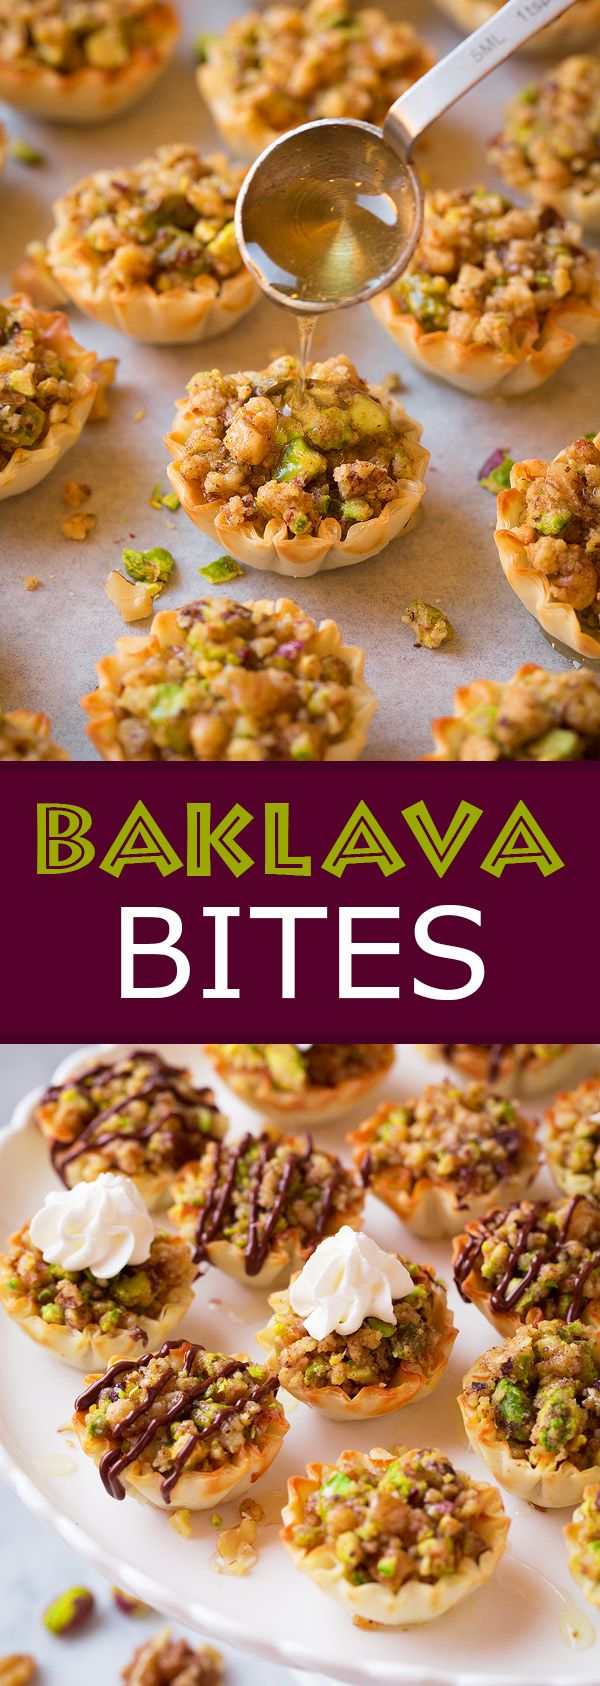 Baklava Bites - Easier and quicker than the traditional baklava but just as delicious!